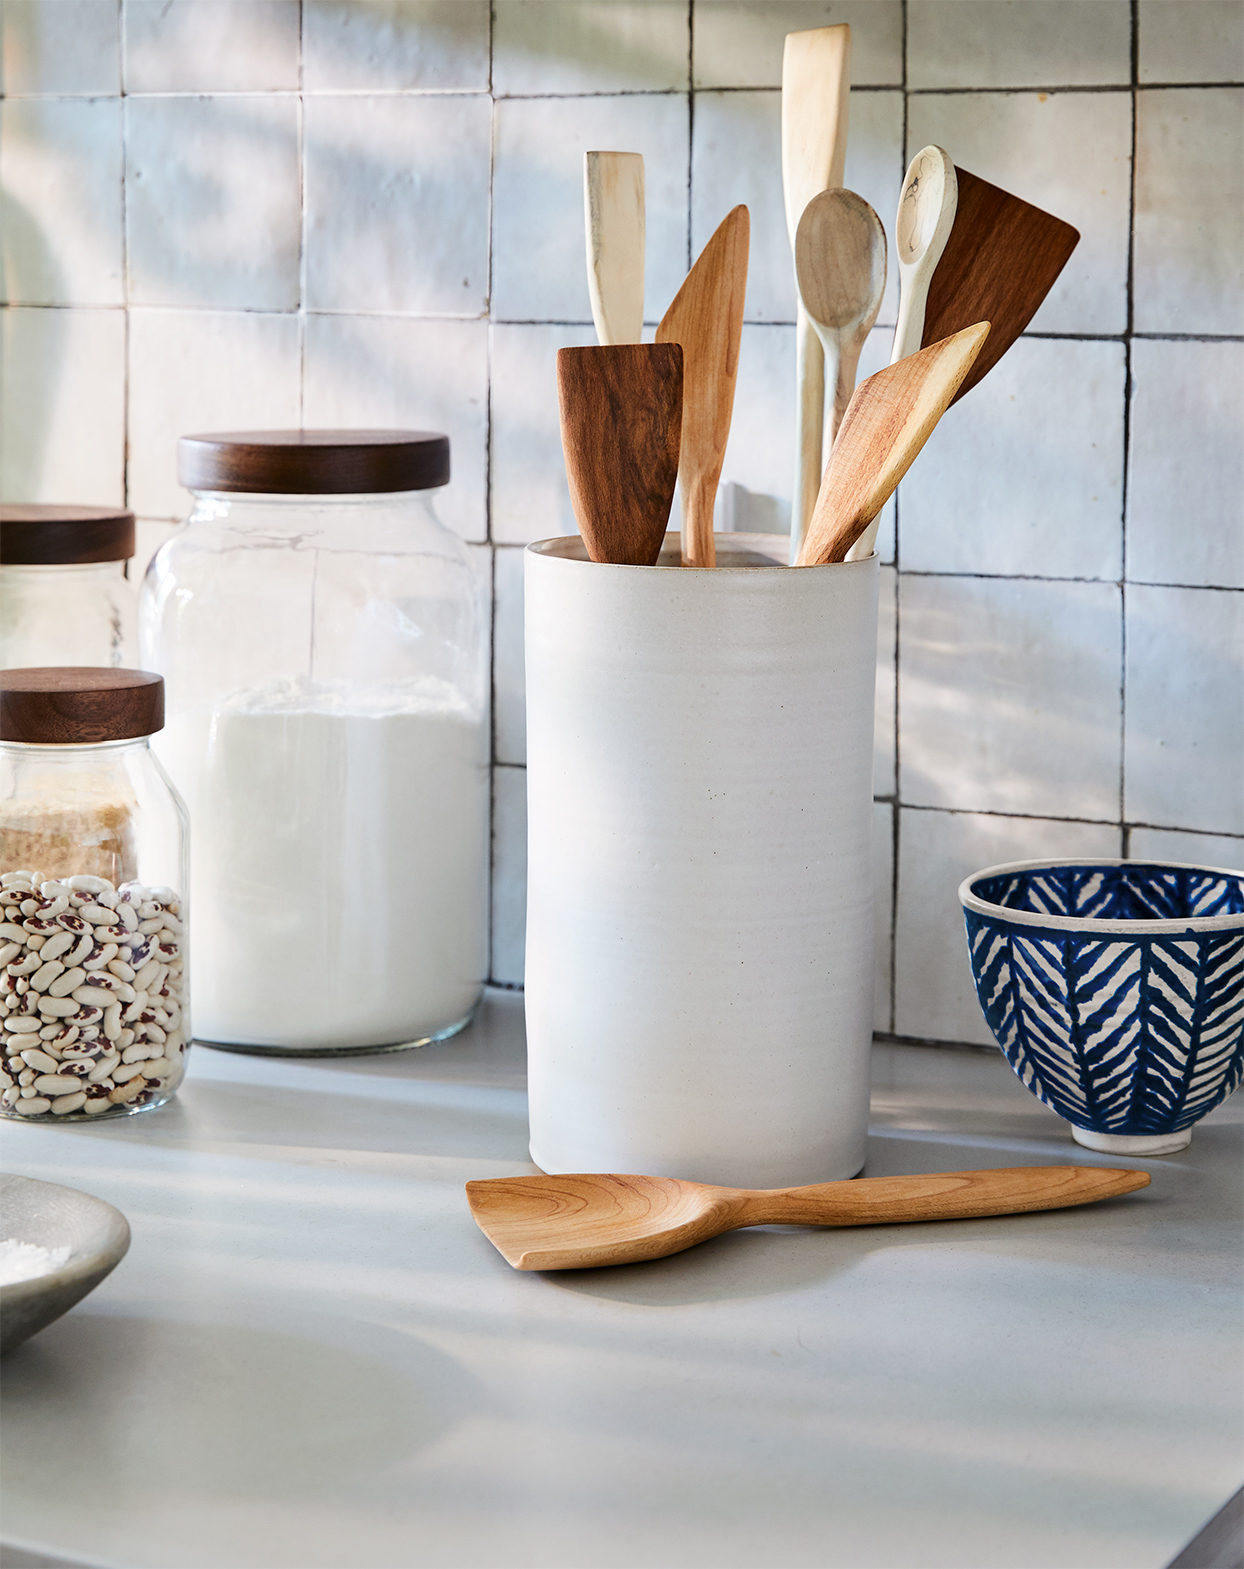 Turnco Wood Goods glass jars, Tracie Hervy crock, and Two Tree Studios hand-carved spatulas and spoons